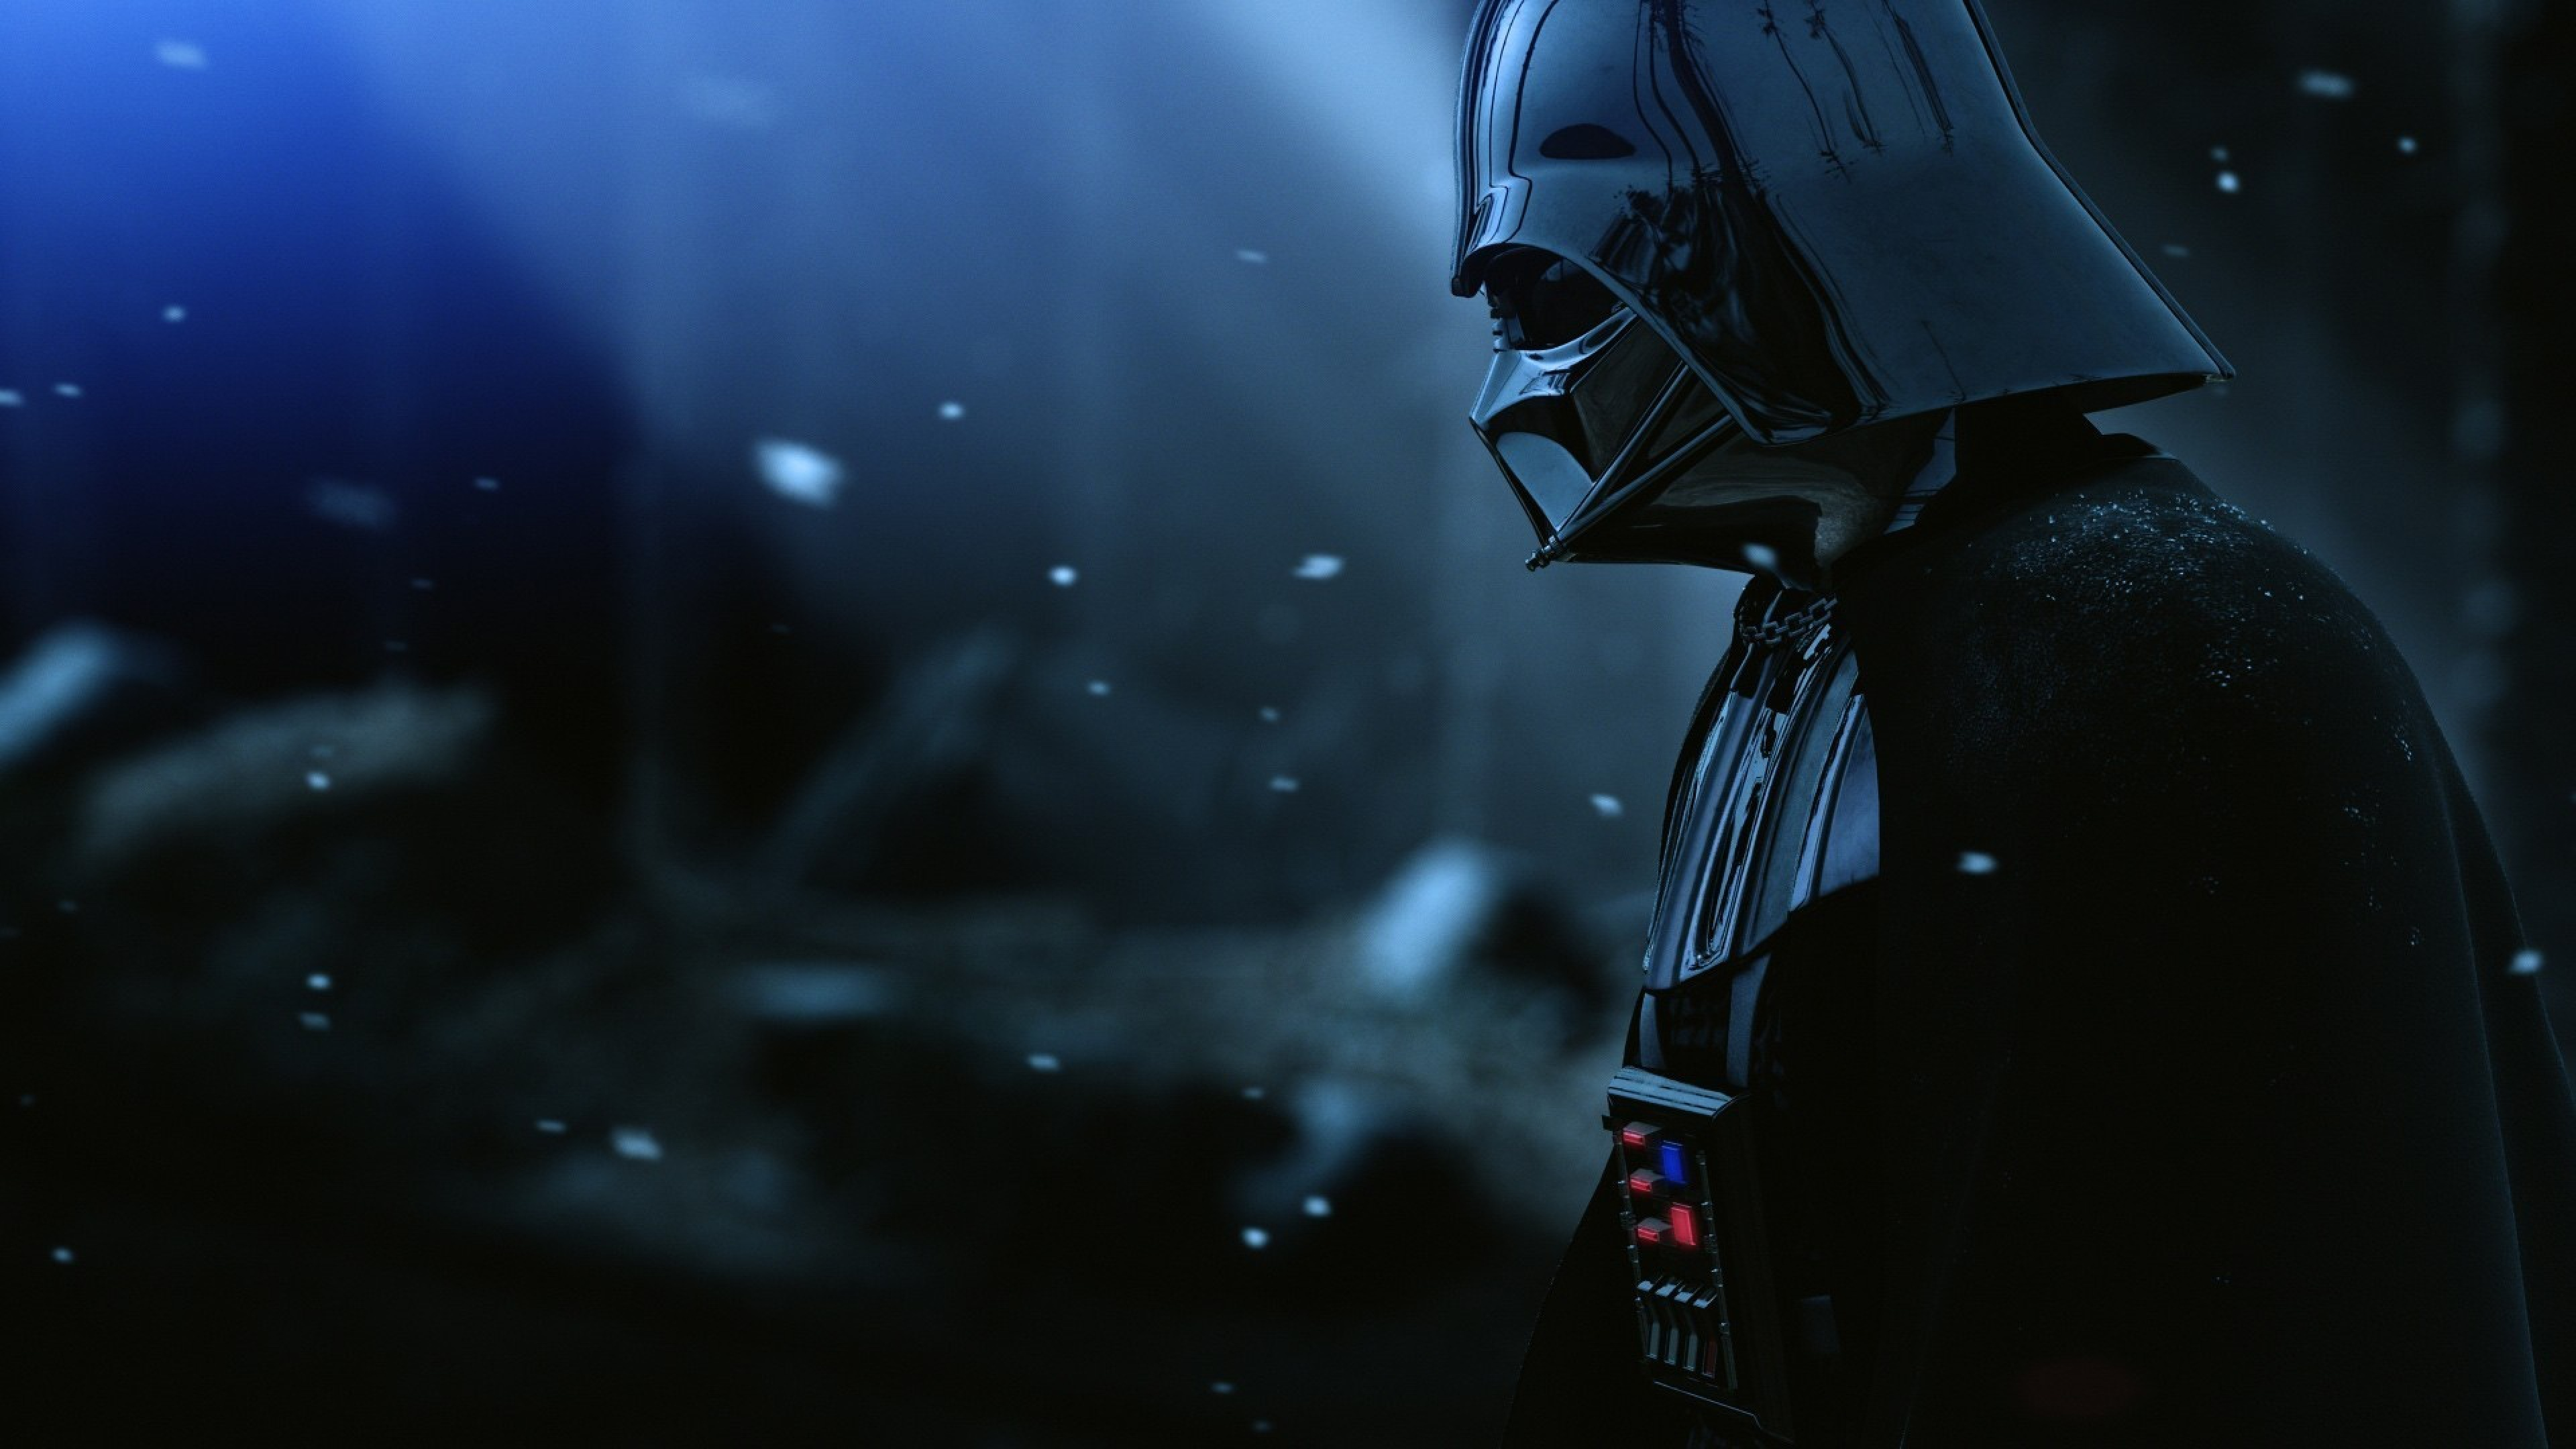 Blue Star Wars Desktop 4k Wallpapers Wallpaper Cave